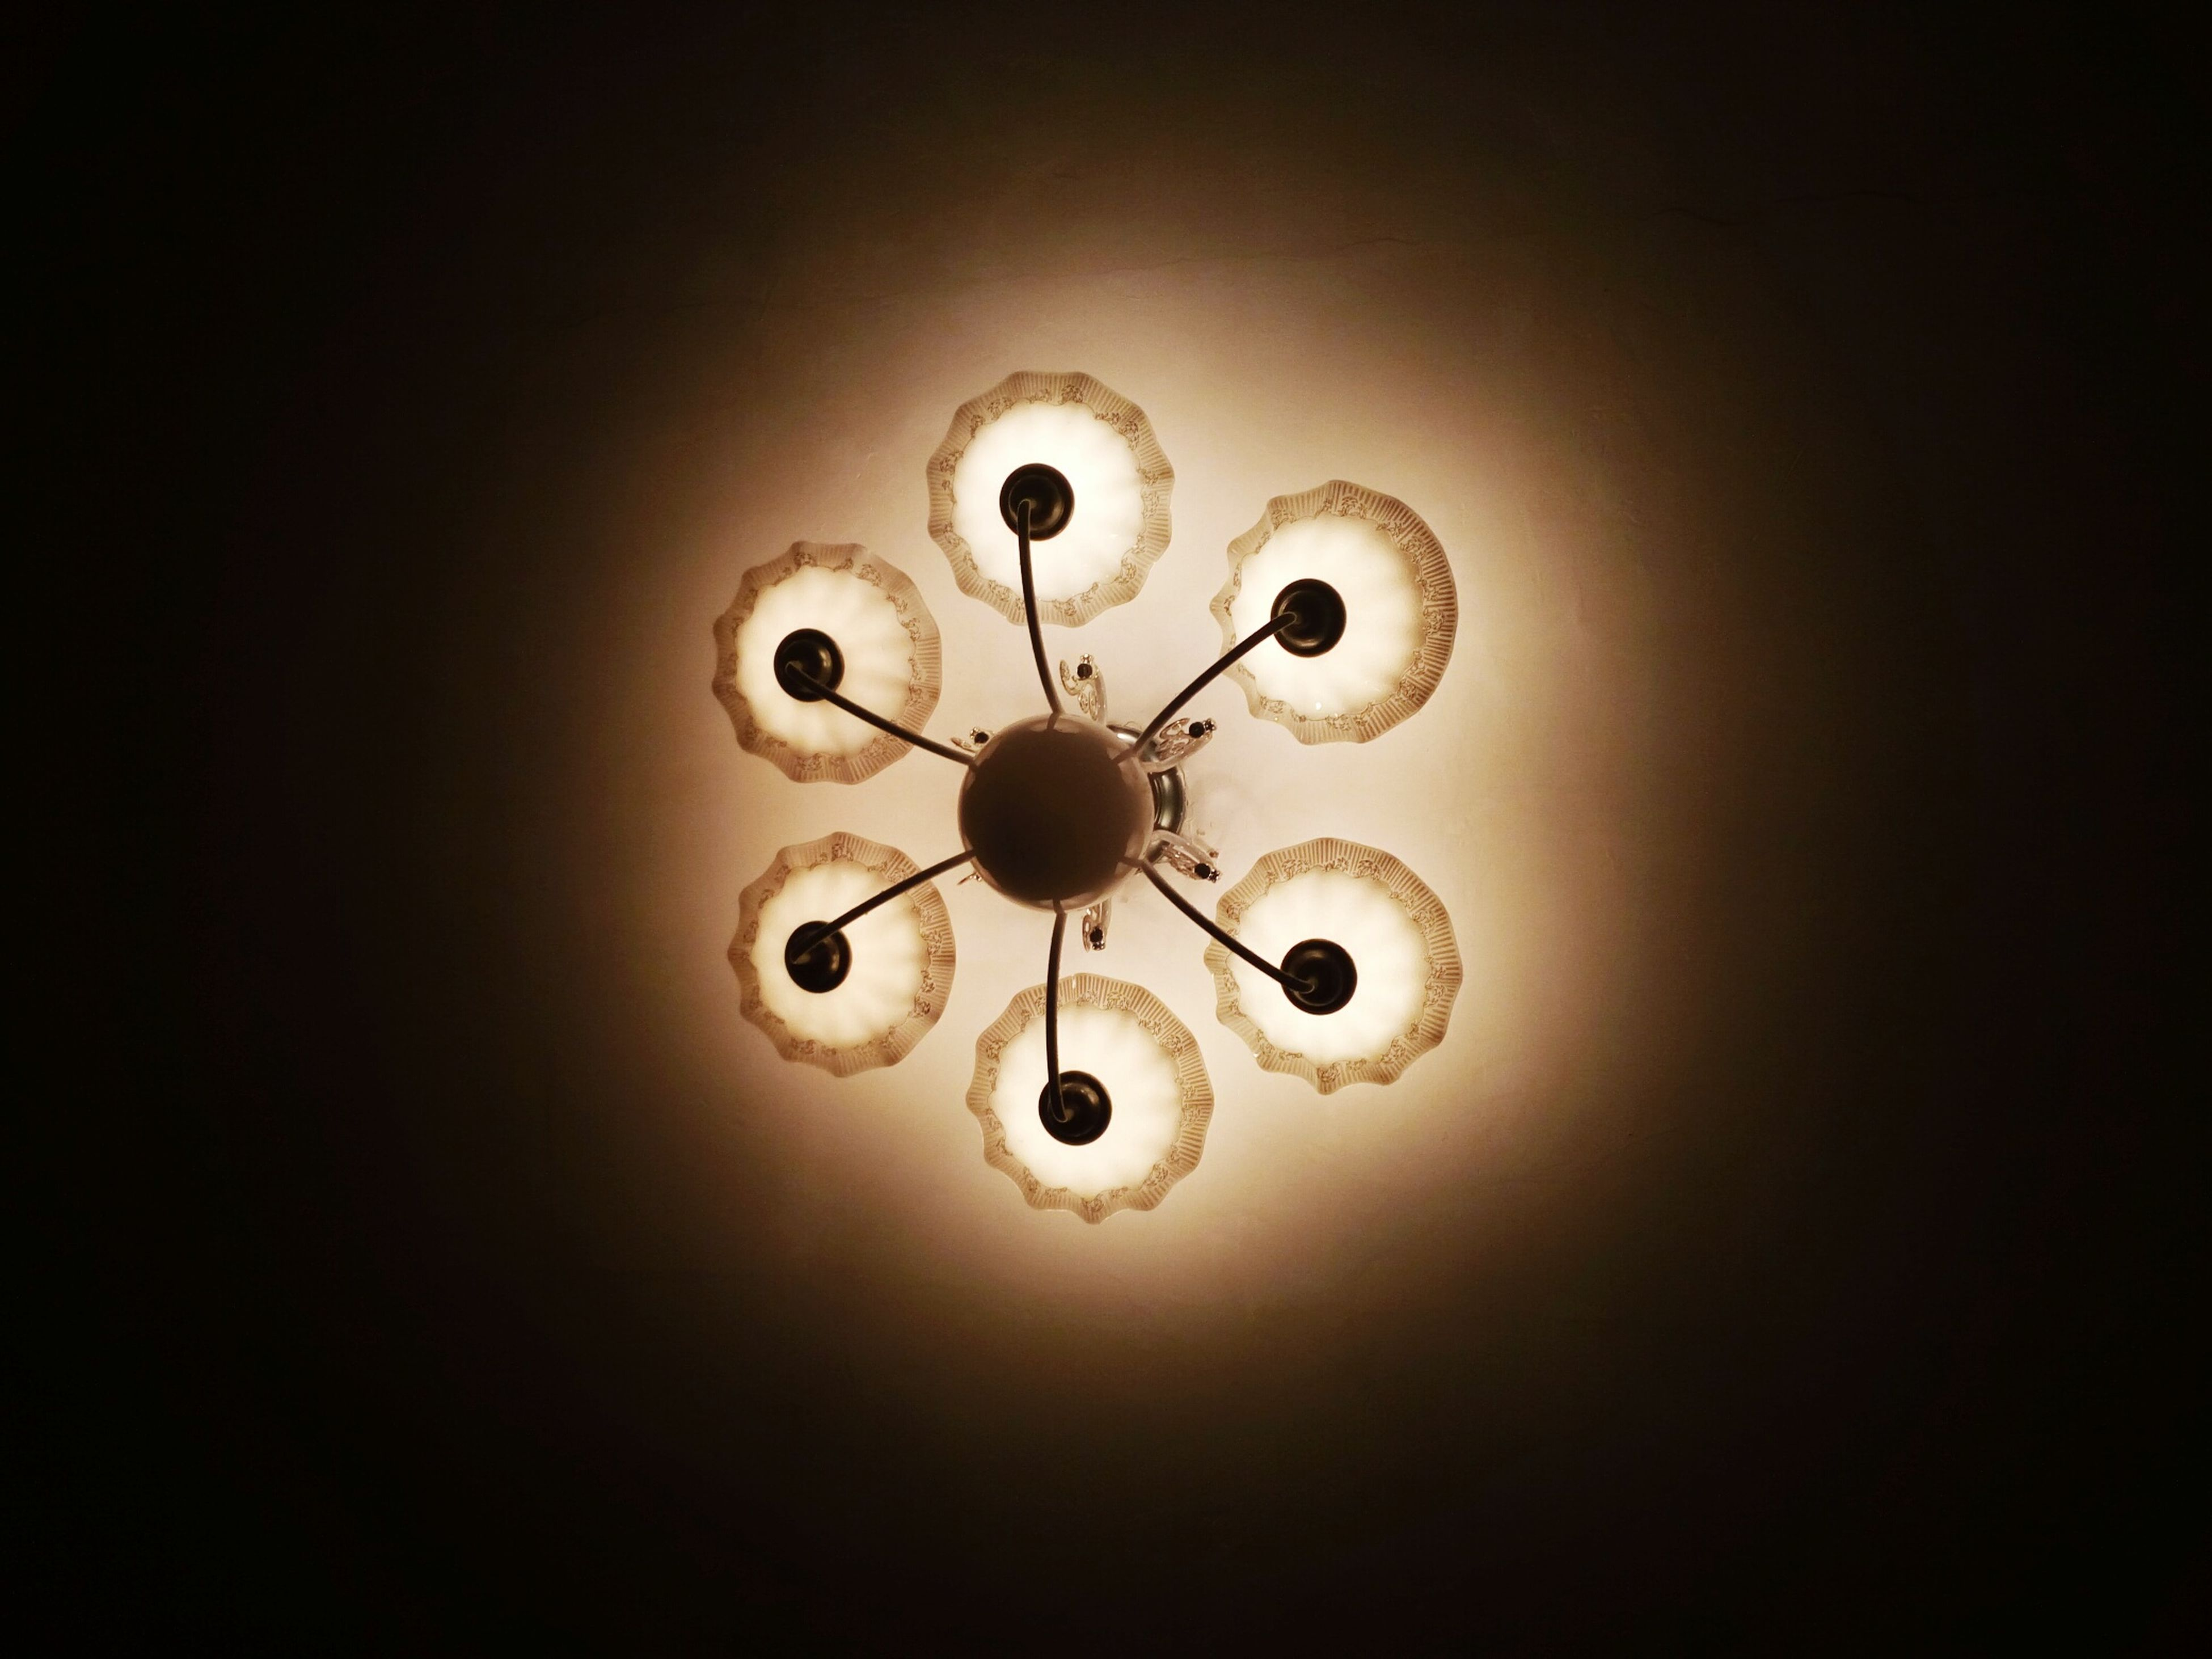 ceiling, lighting equipment, illuminated, indoors, electricity, directly below, low angle view, light - natural phenomenon, chandelier, glowing, geometric shape, modern, electric light, decoration, circle, no people, architectural feature, darkroom, ceiling light